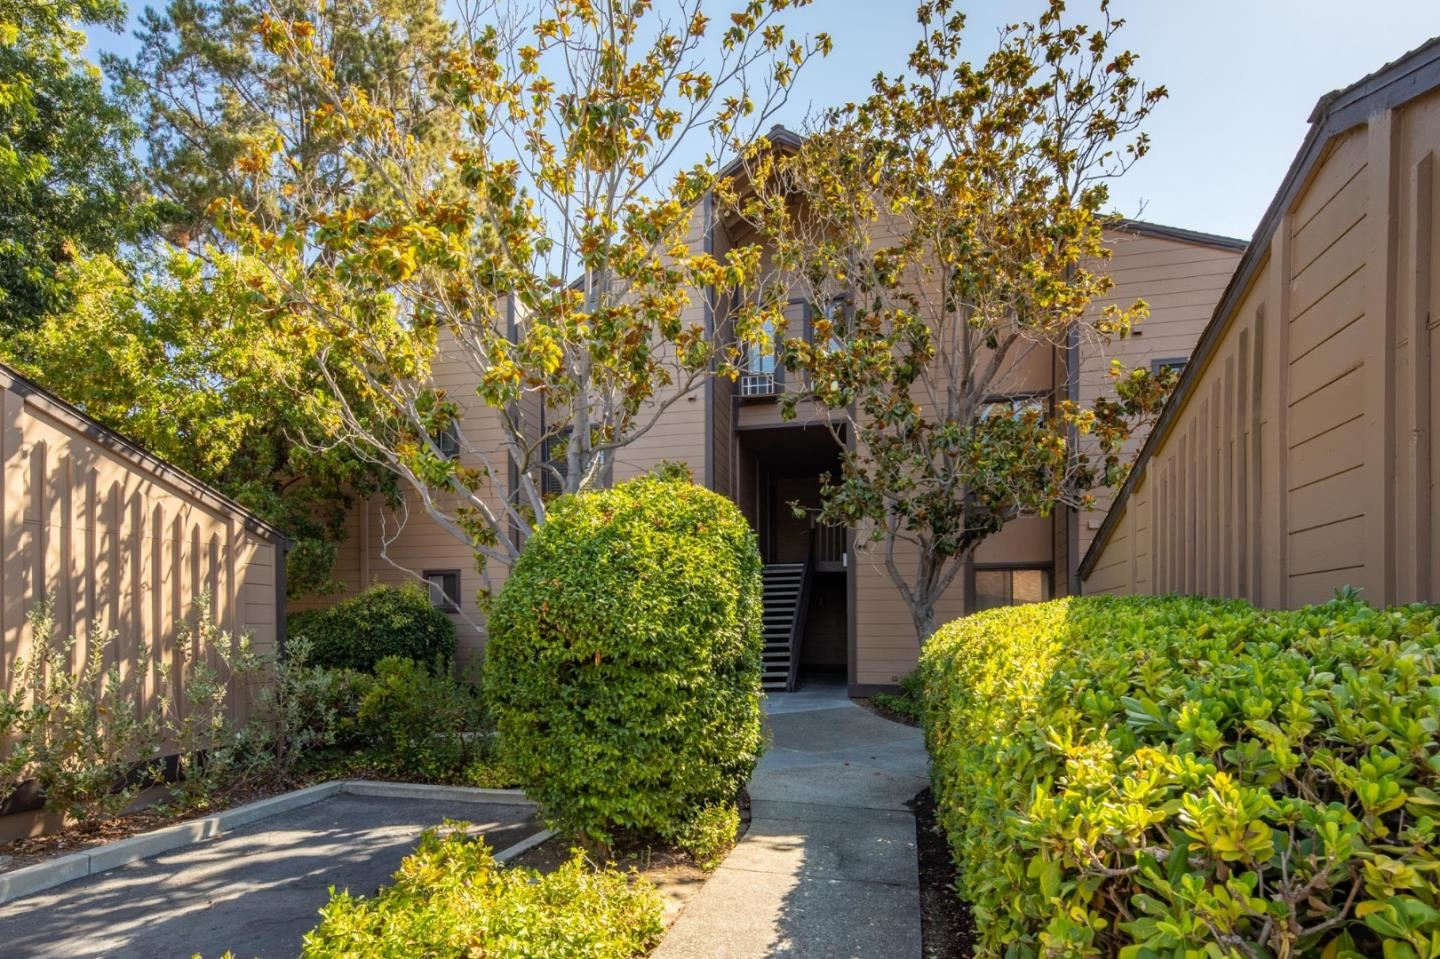 Photo for 1963 Rock Street #6, MOUNTAIN VIEW, CA 94043 (MLS # ML81861653)